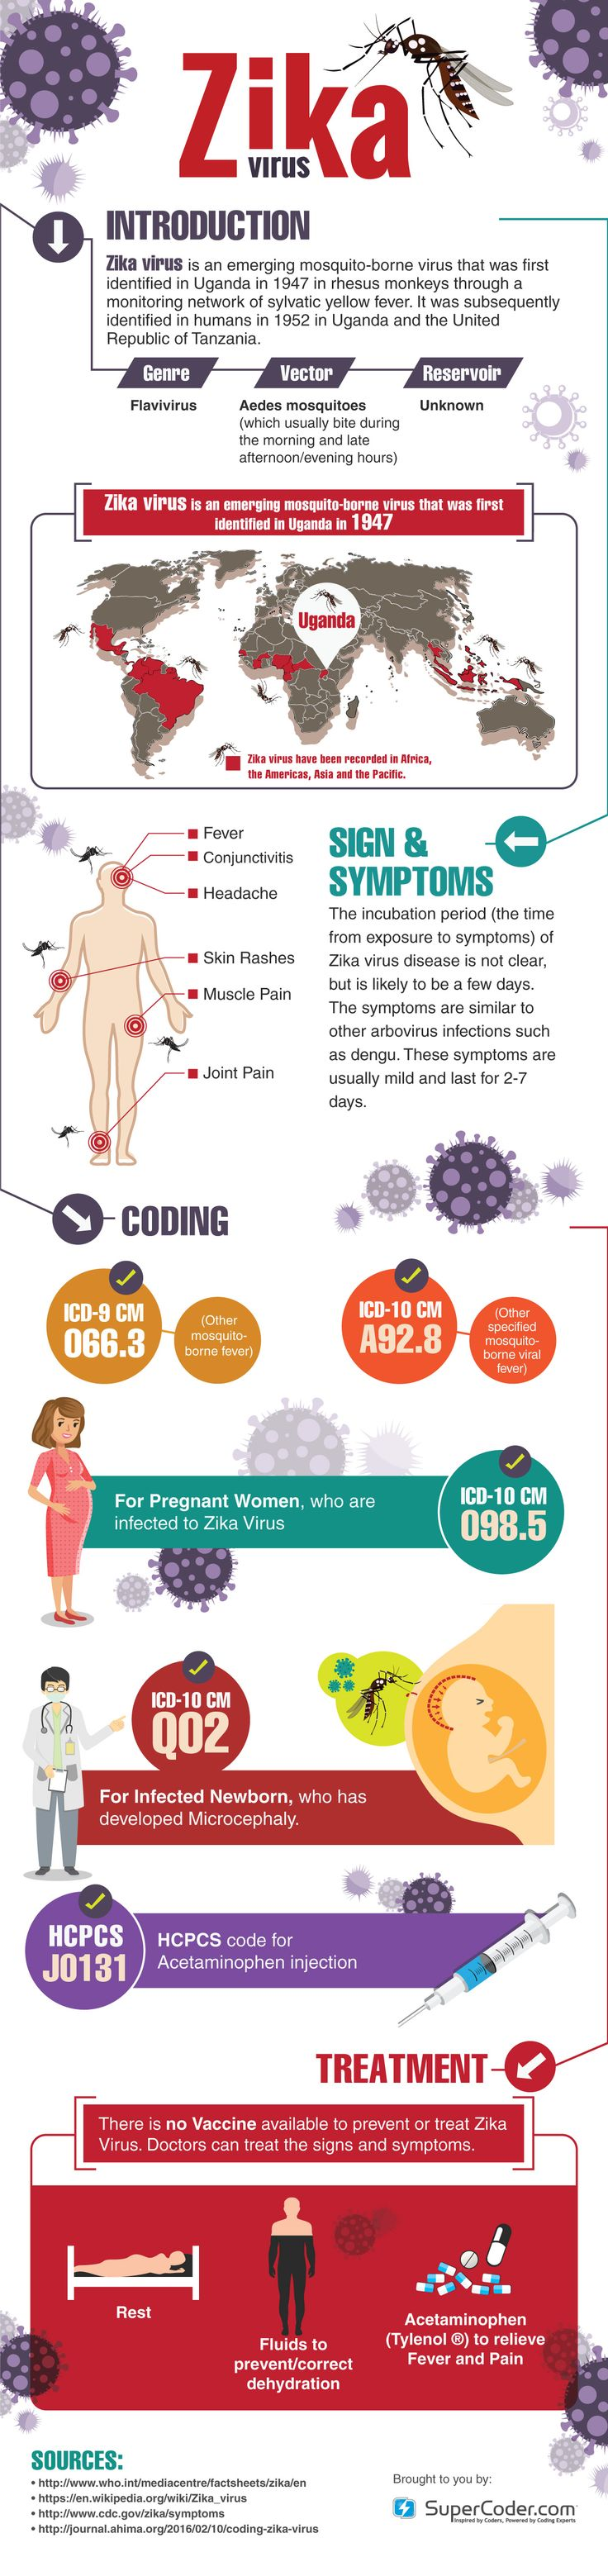 100 tips for icd 10 pcs coding -  Medicalcoding Icd10 Health Medical